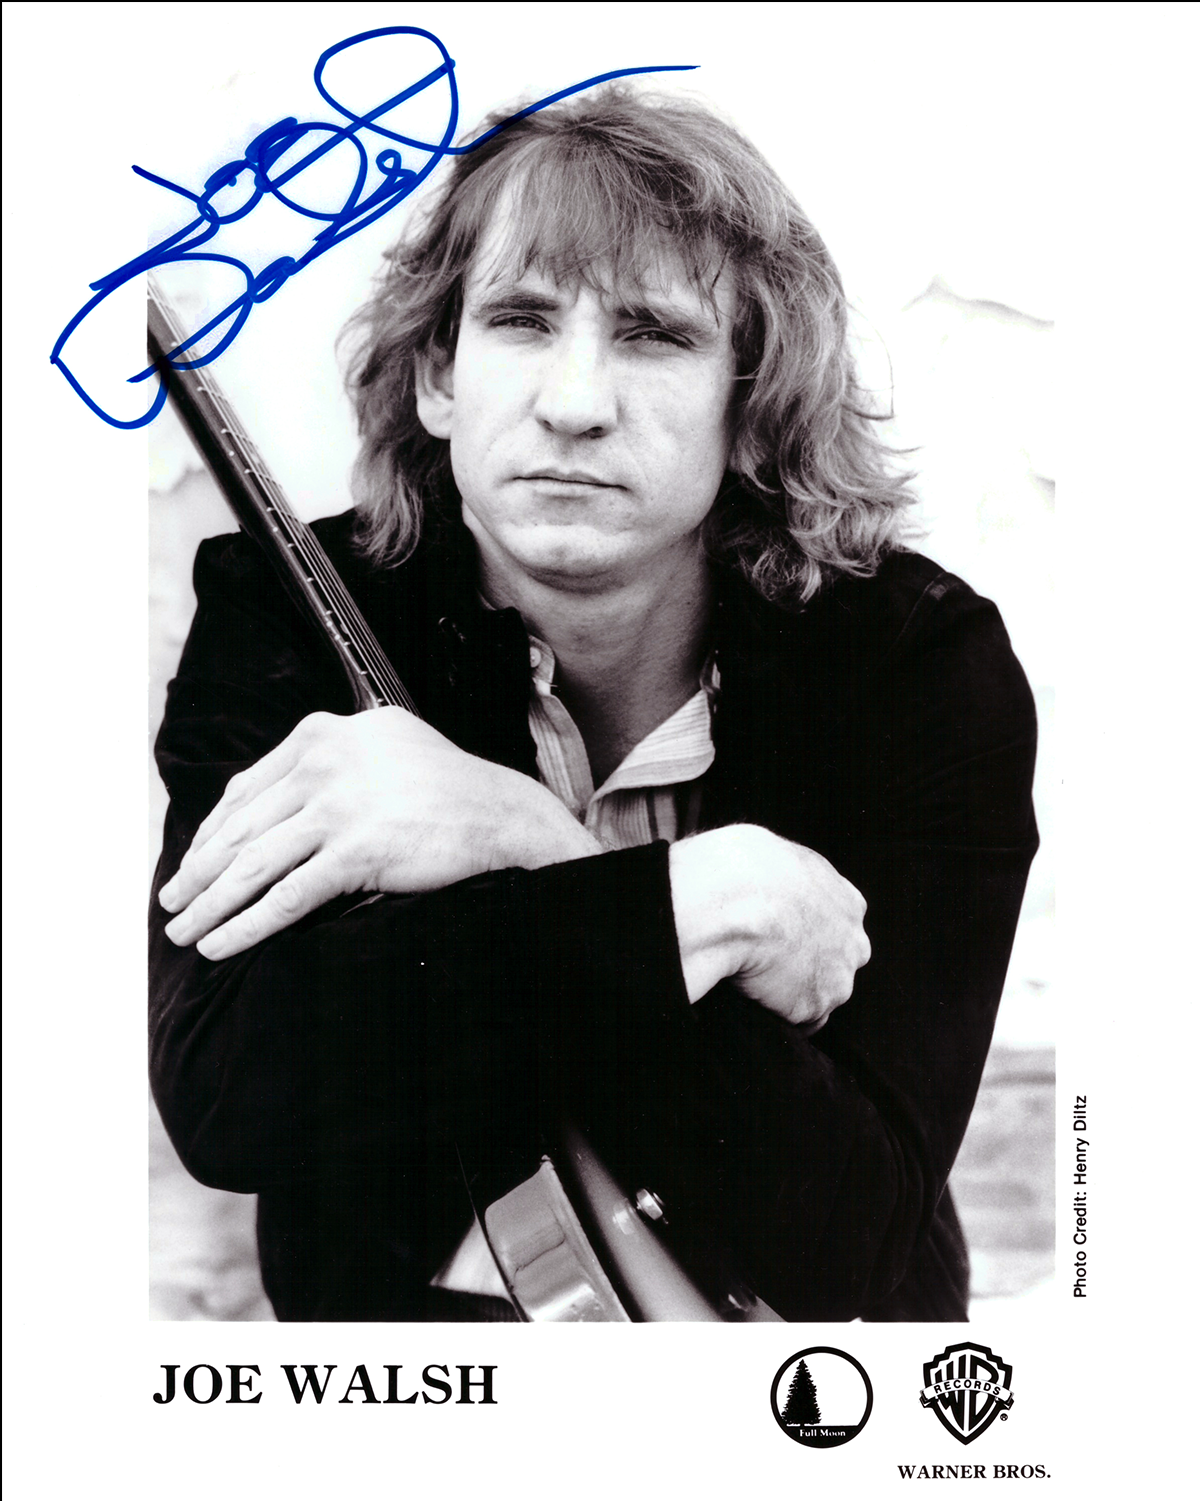 Joe Walsh photo #3